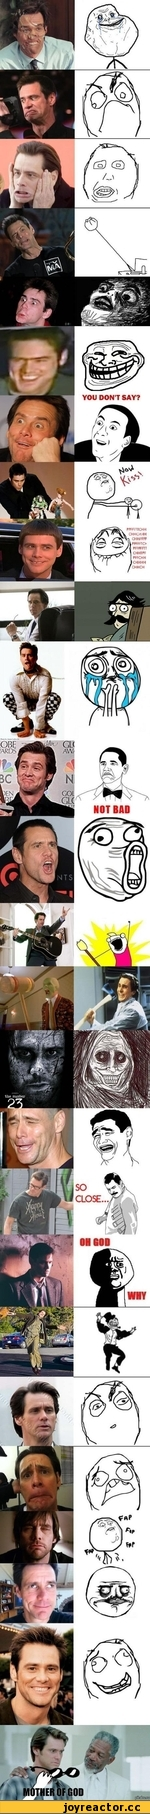 All the rage faces